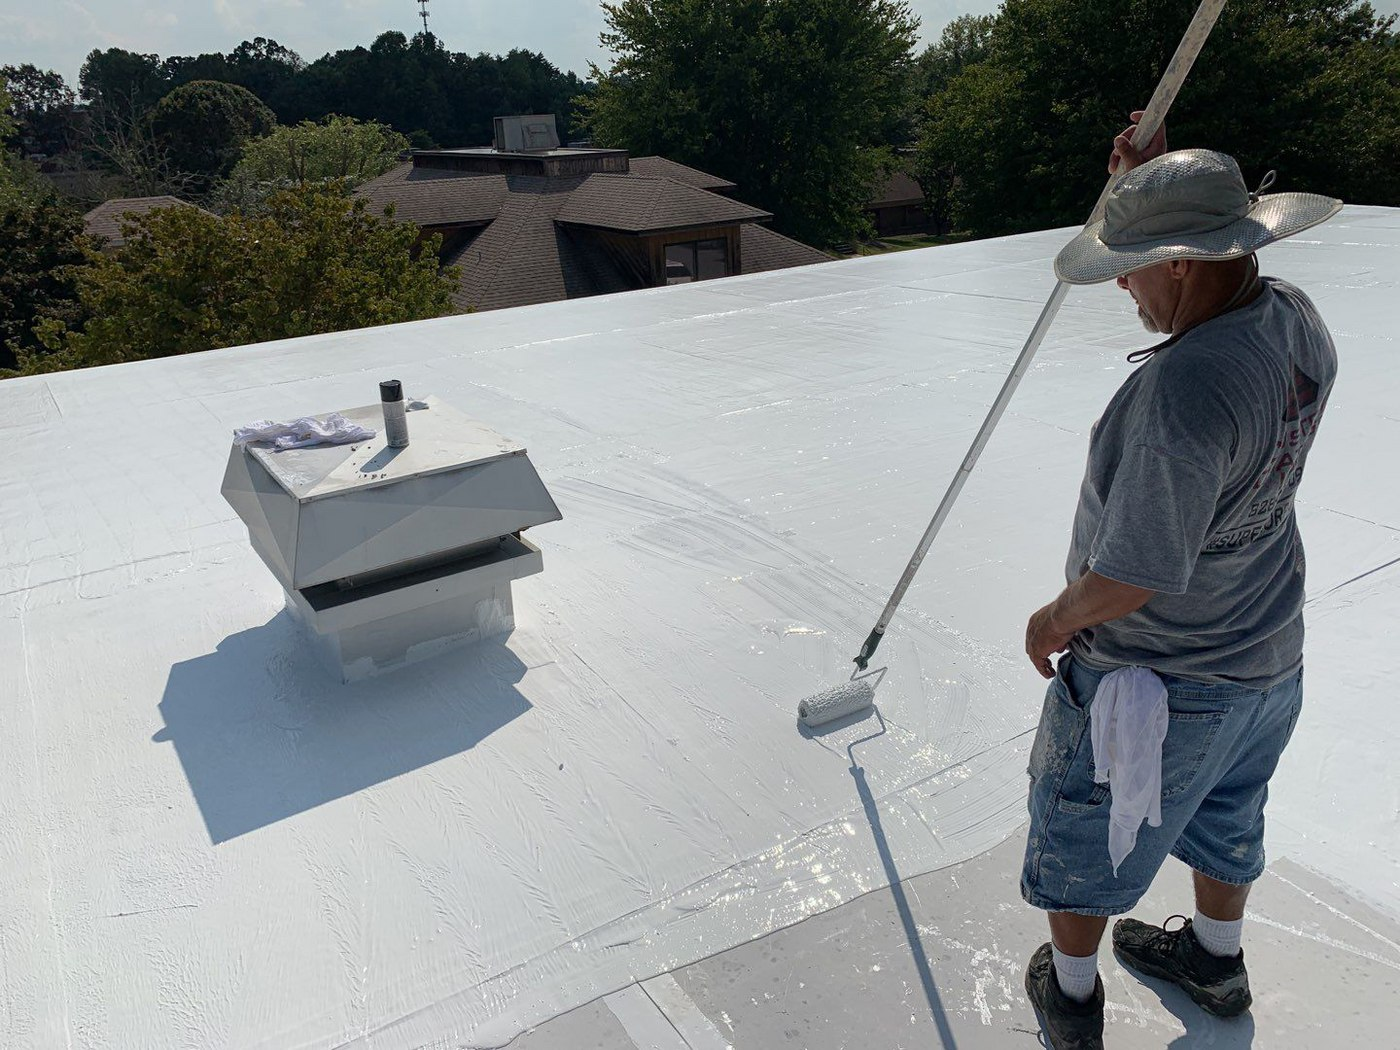 How much does it cost to coat a flat roof?